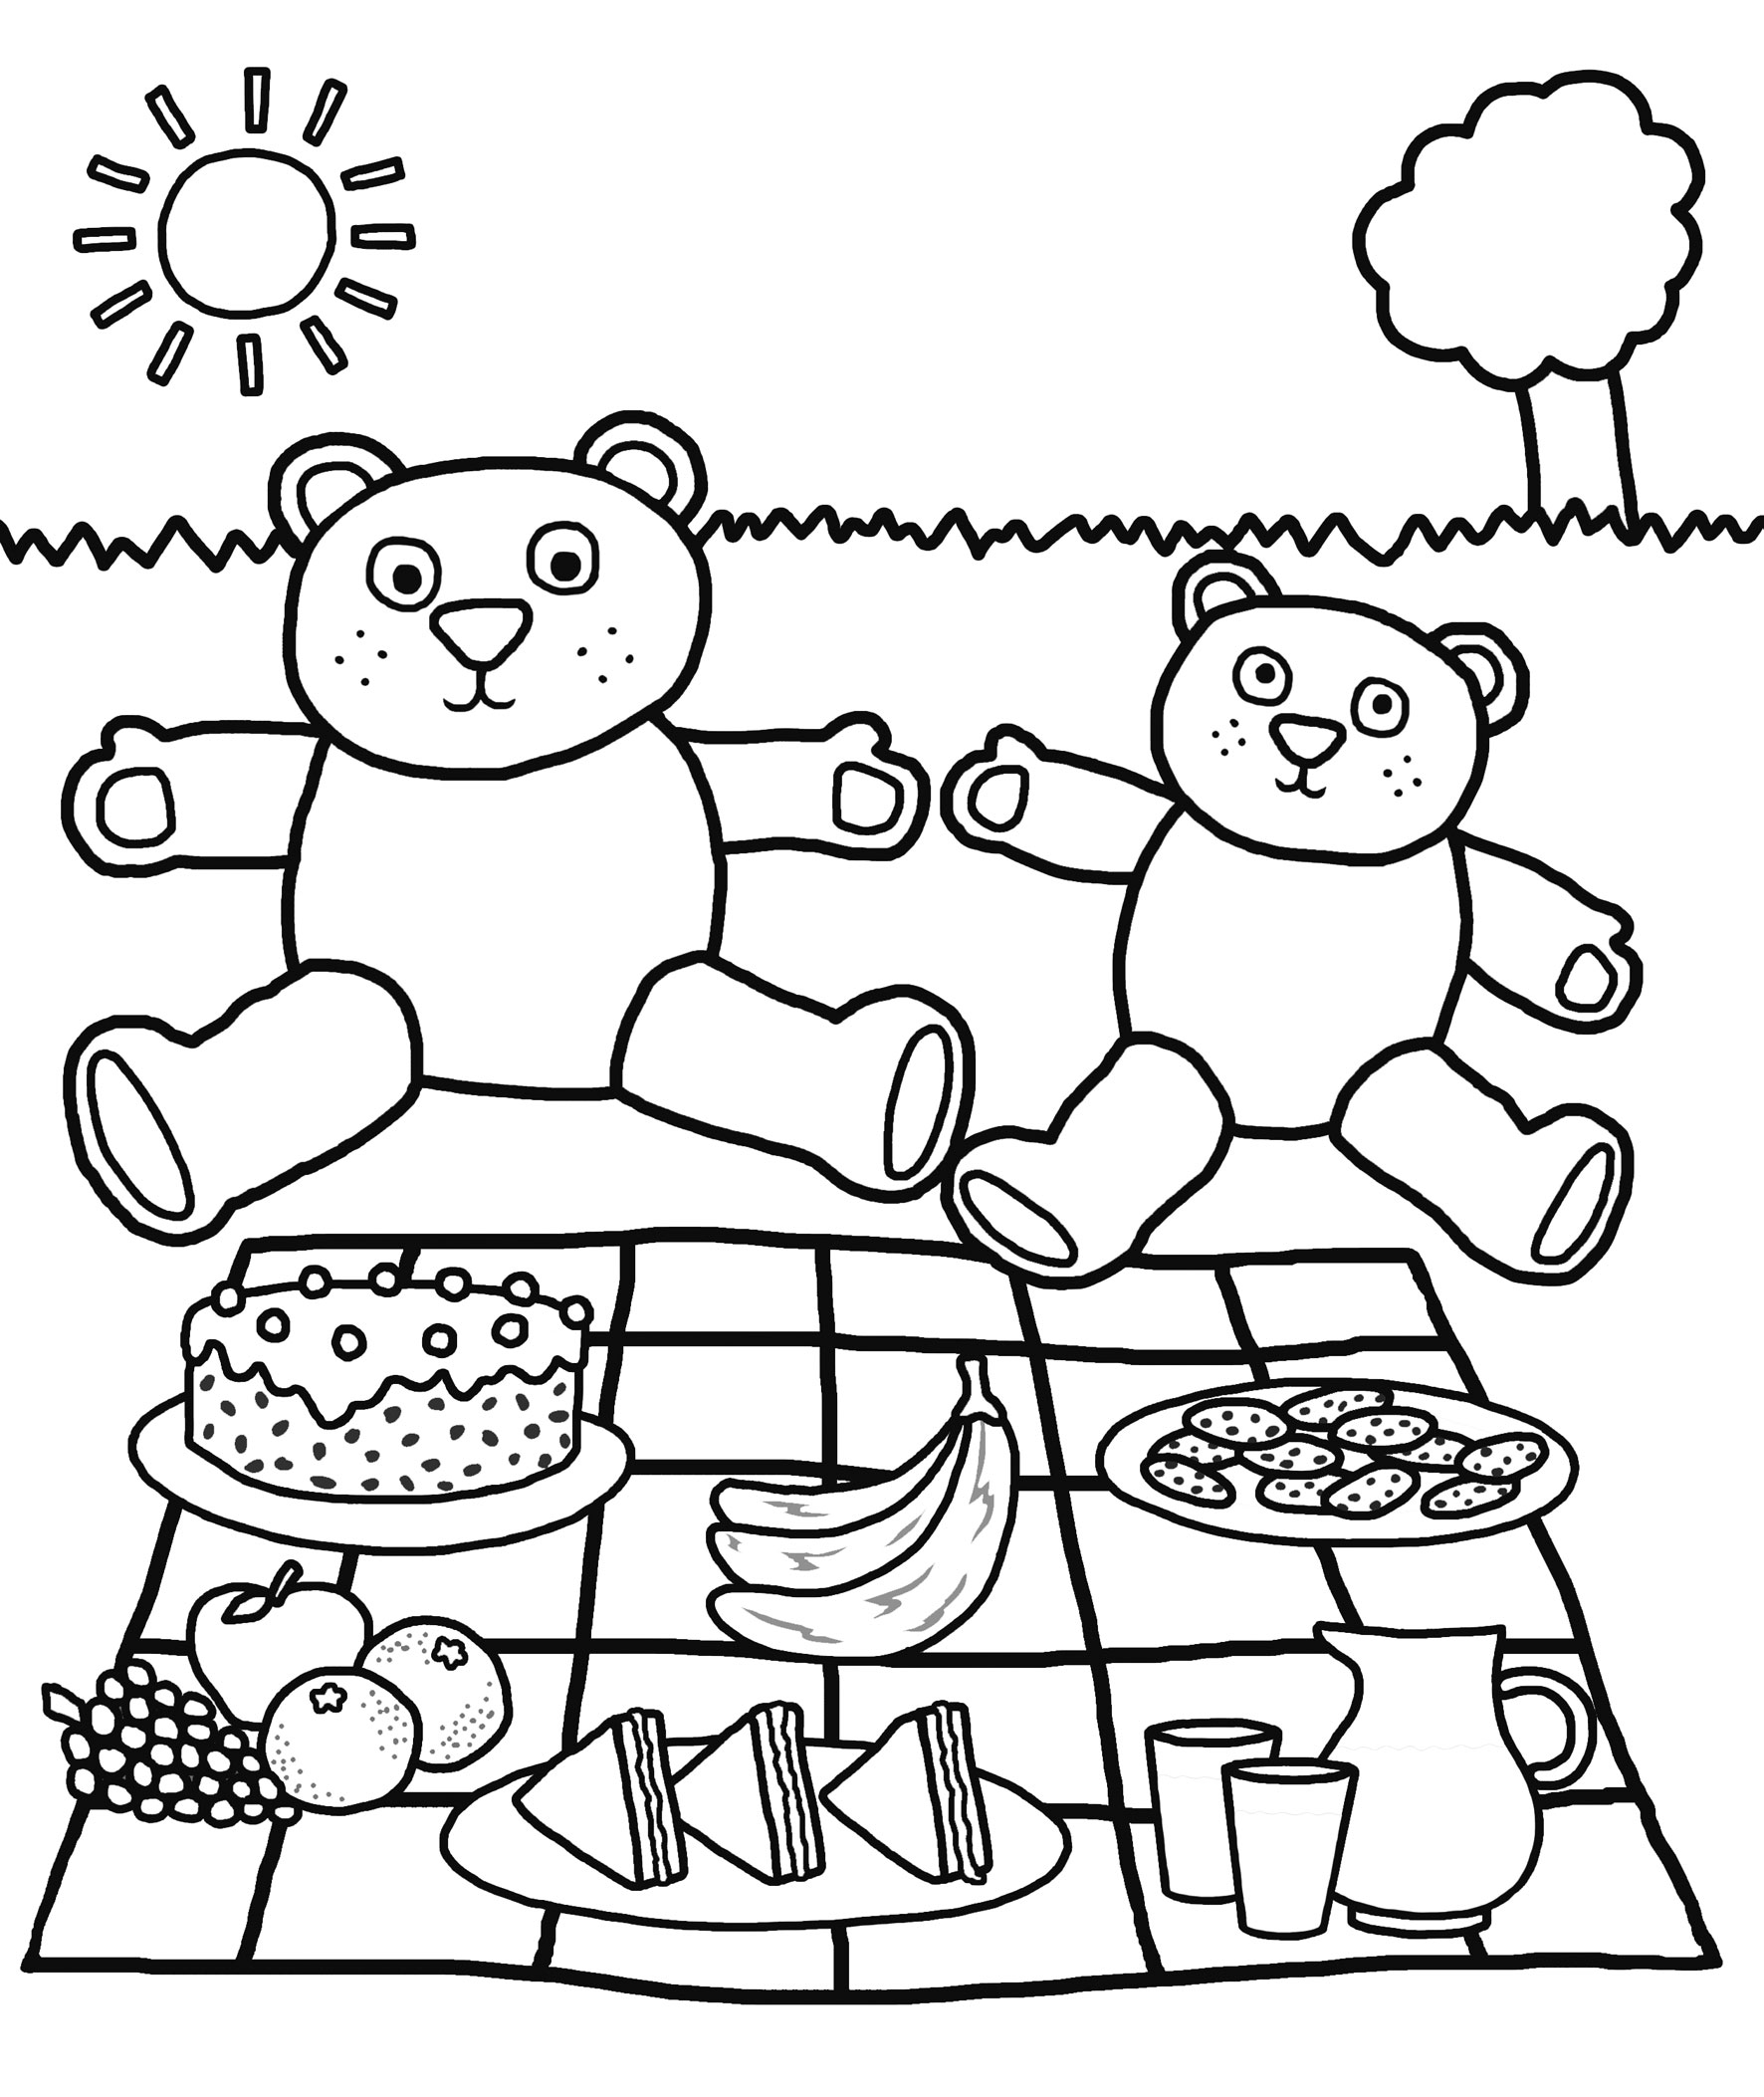 family coloring pages for toddlers - free printable kindergarten coloring pages for kids